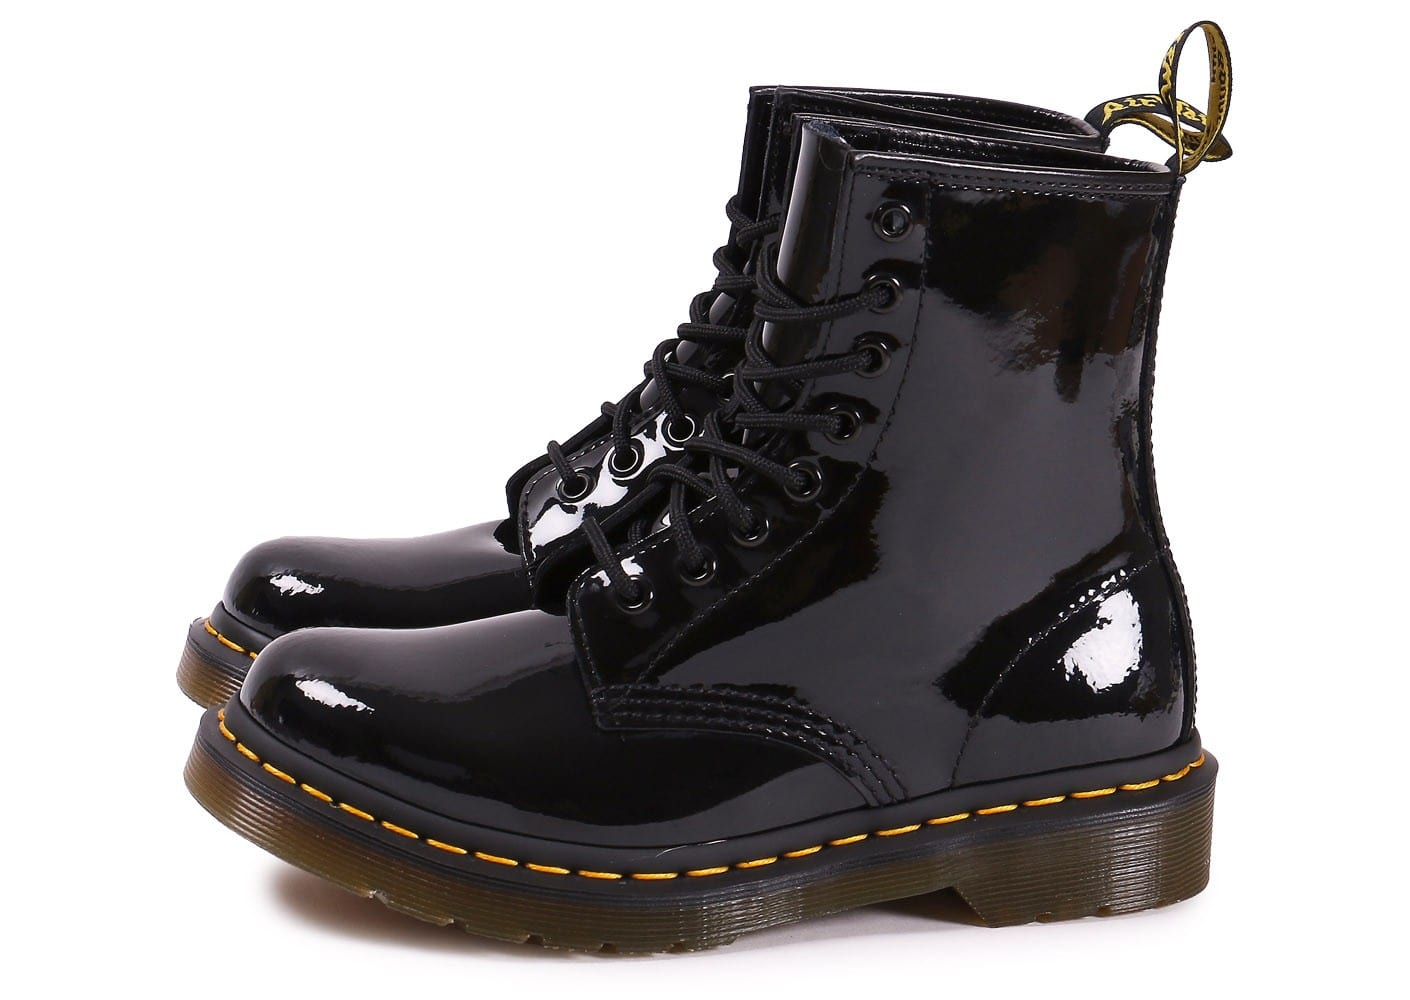 dr martens 1460 w vernis noire chaussures 50 sur le 2e article chausport. Black Bedroom Furniture Sets. Home Design Ideas